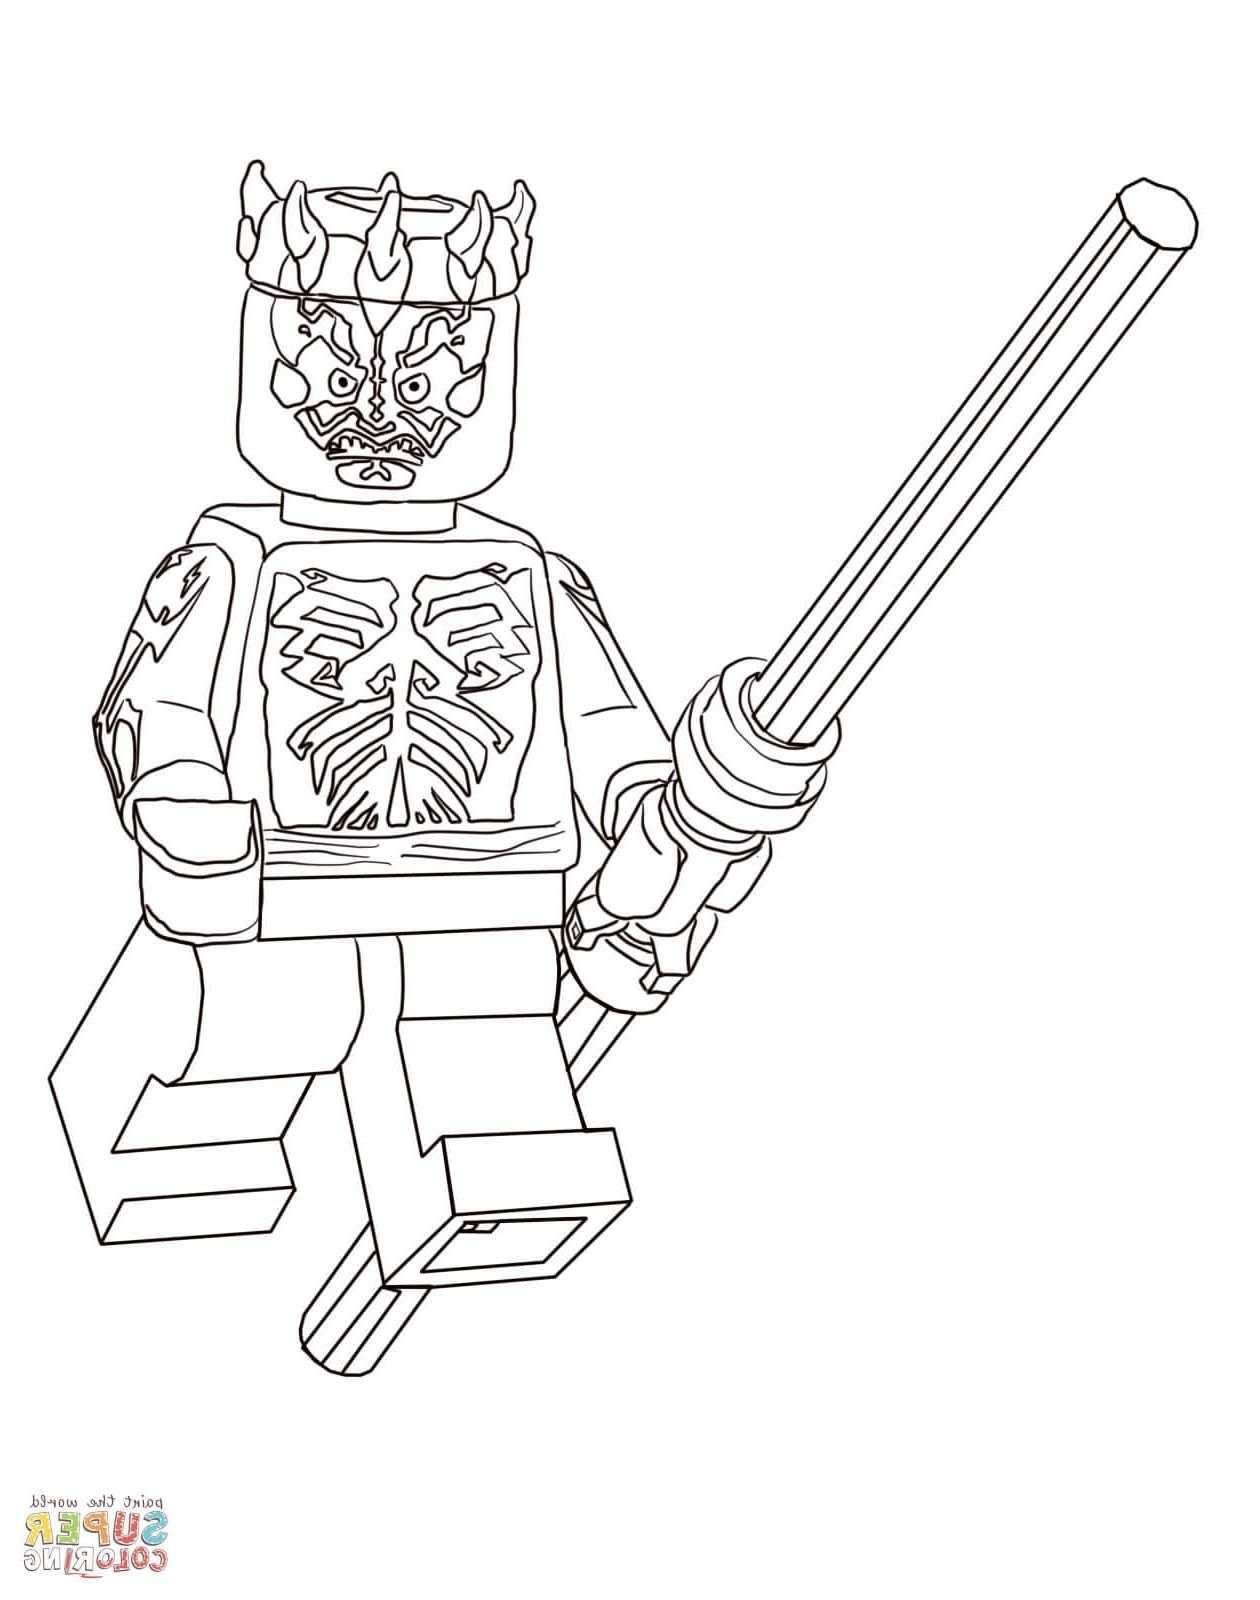 Lego Star Wars Coloring Nocl Lego Star Wars Coloring Pages Free